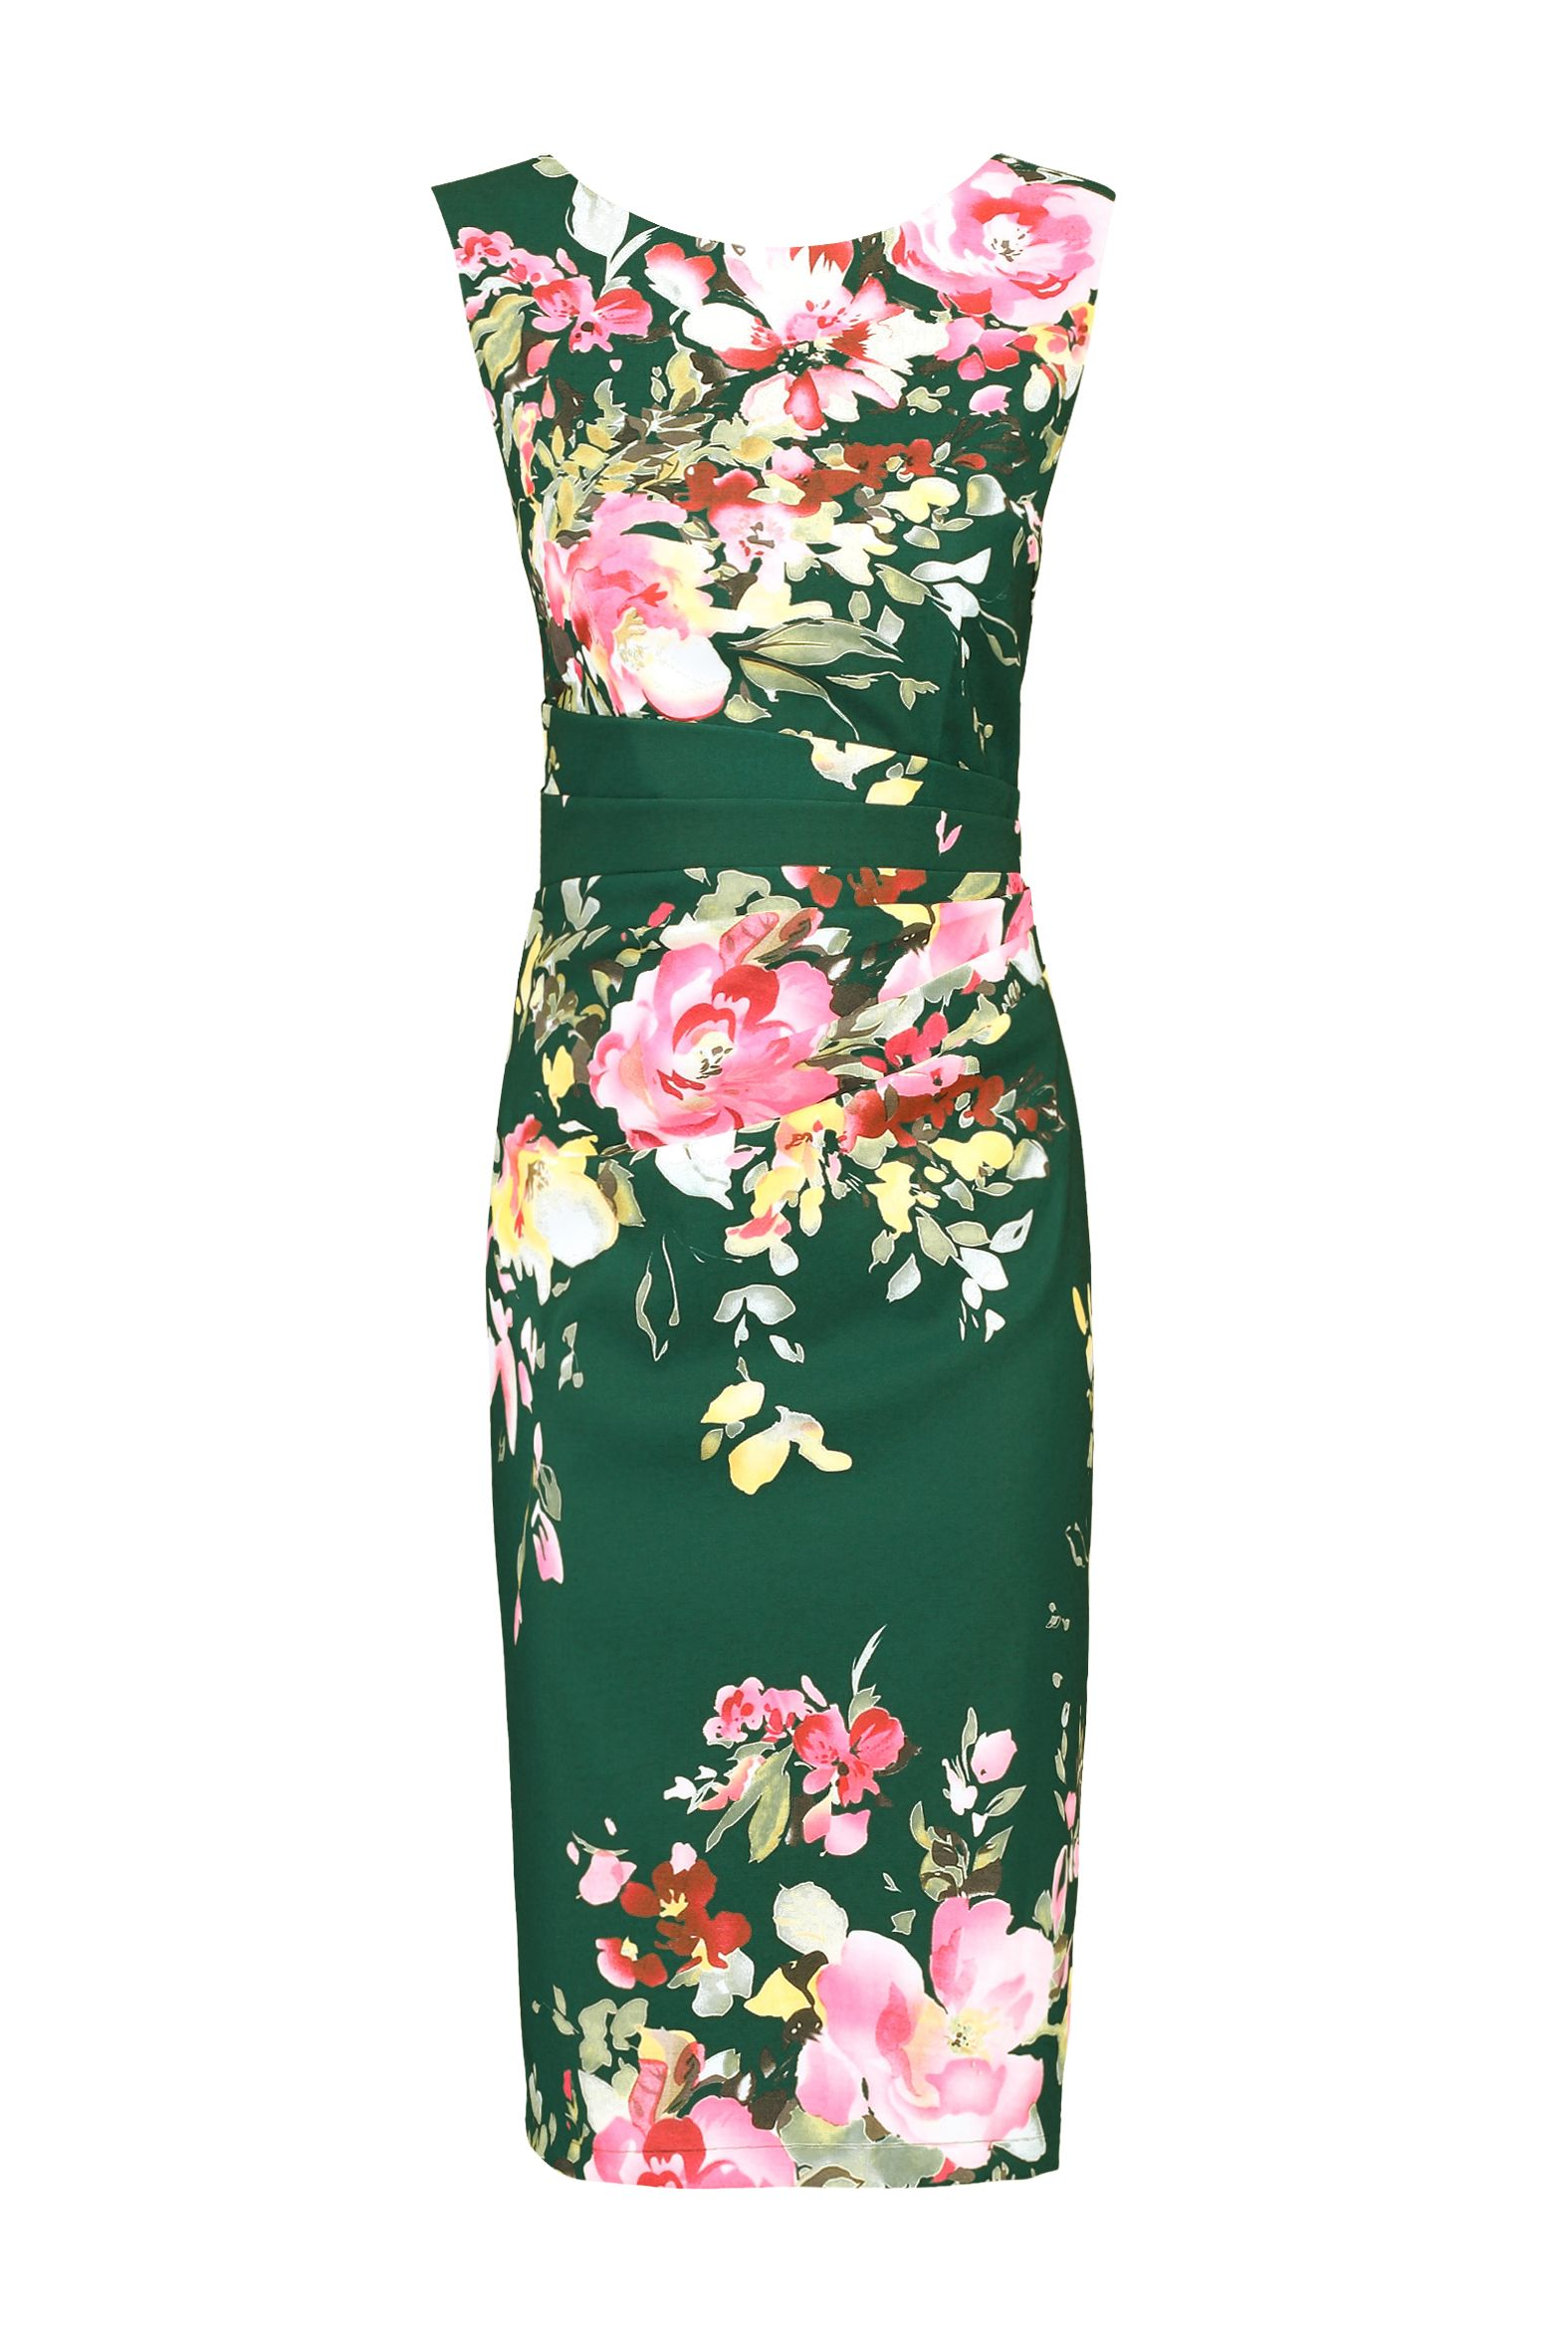 Jolie Moi Floral Print Ruched Shift Dress, Dark Green